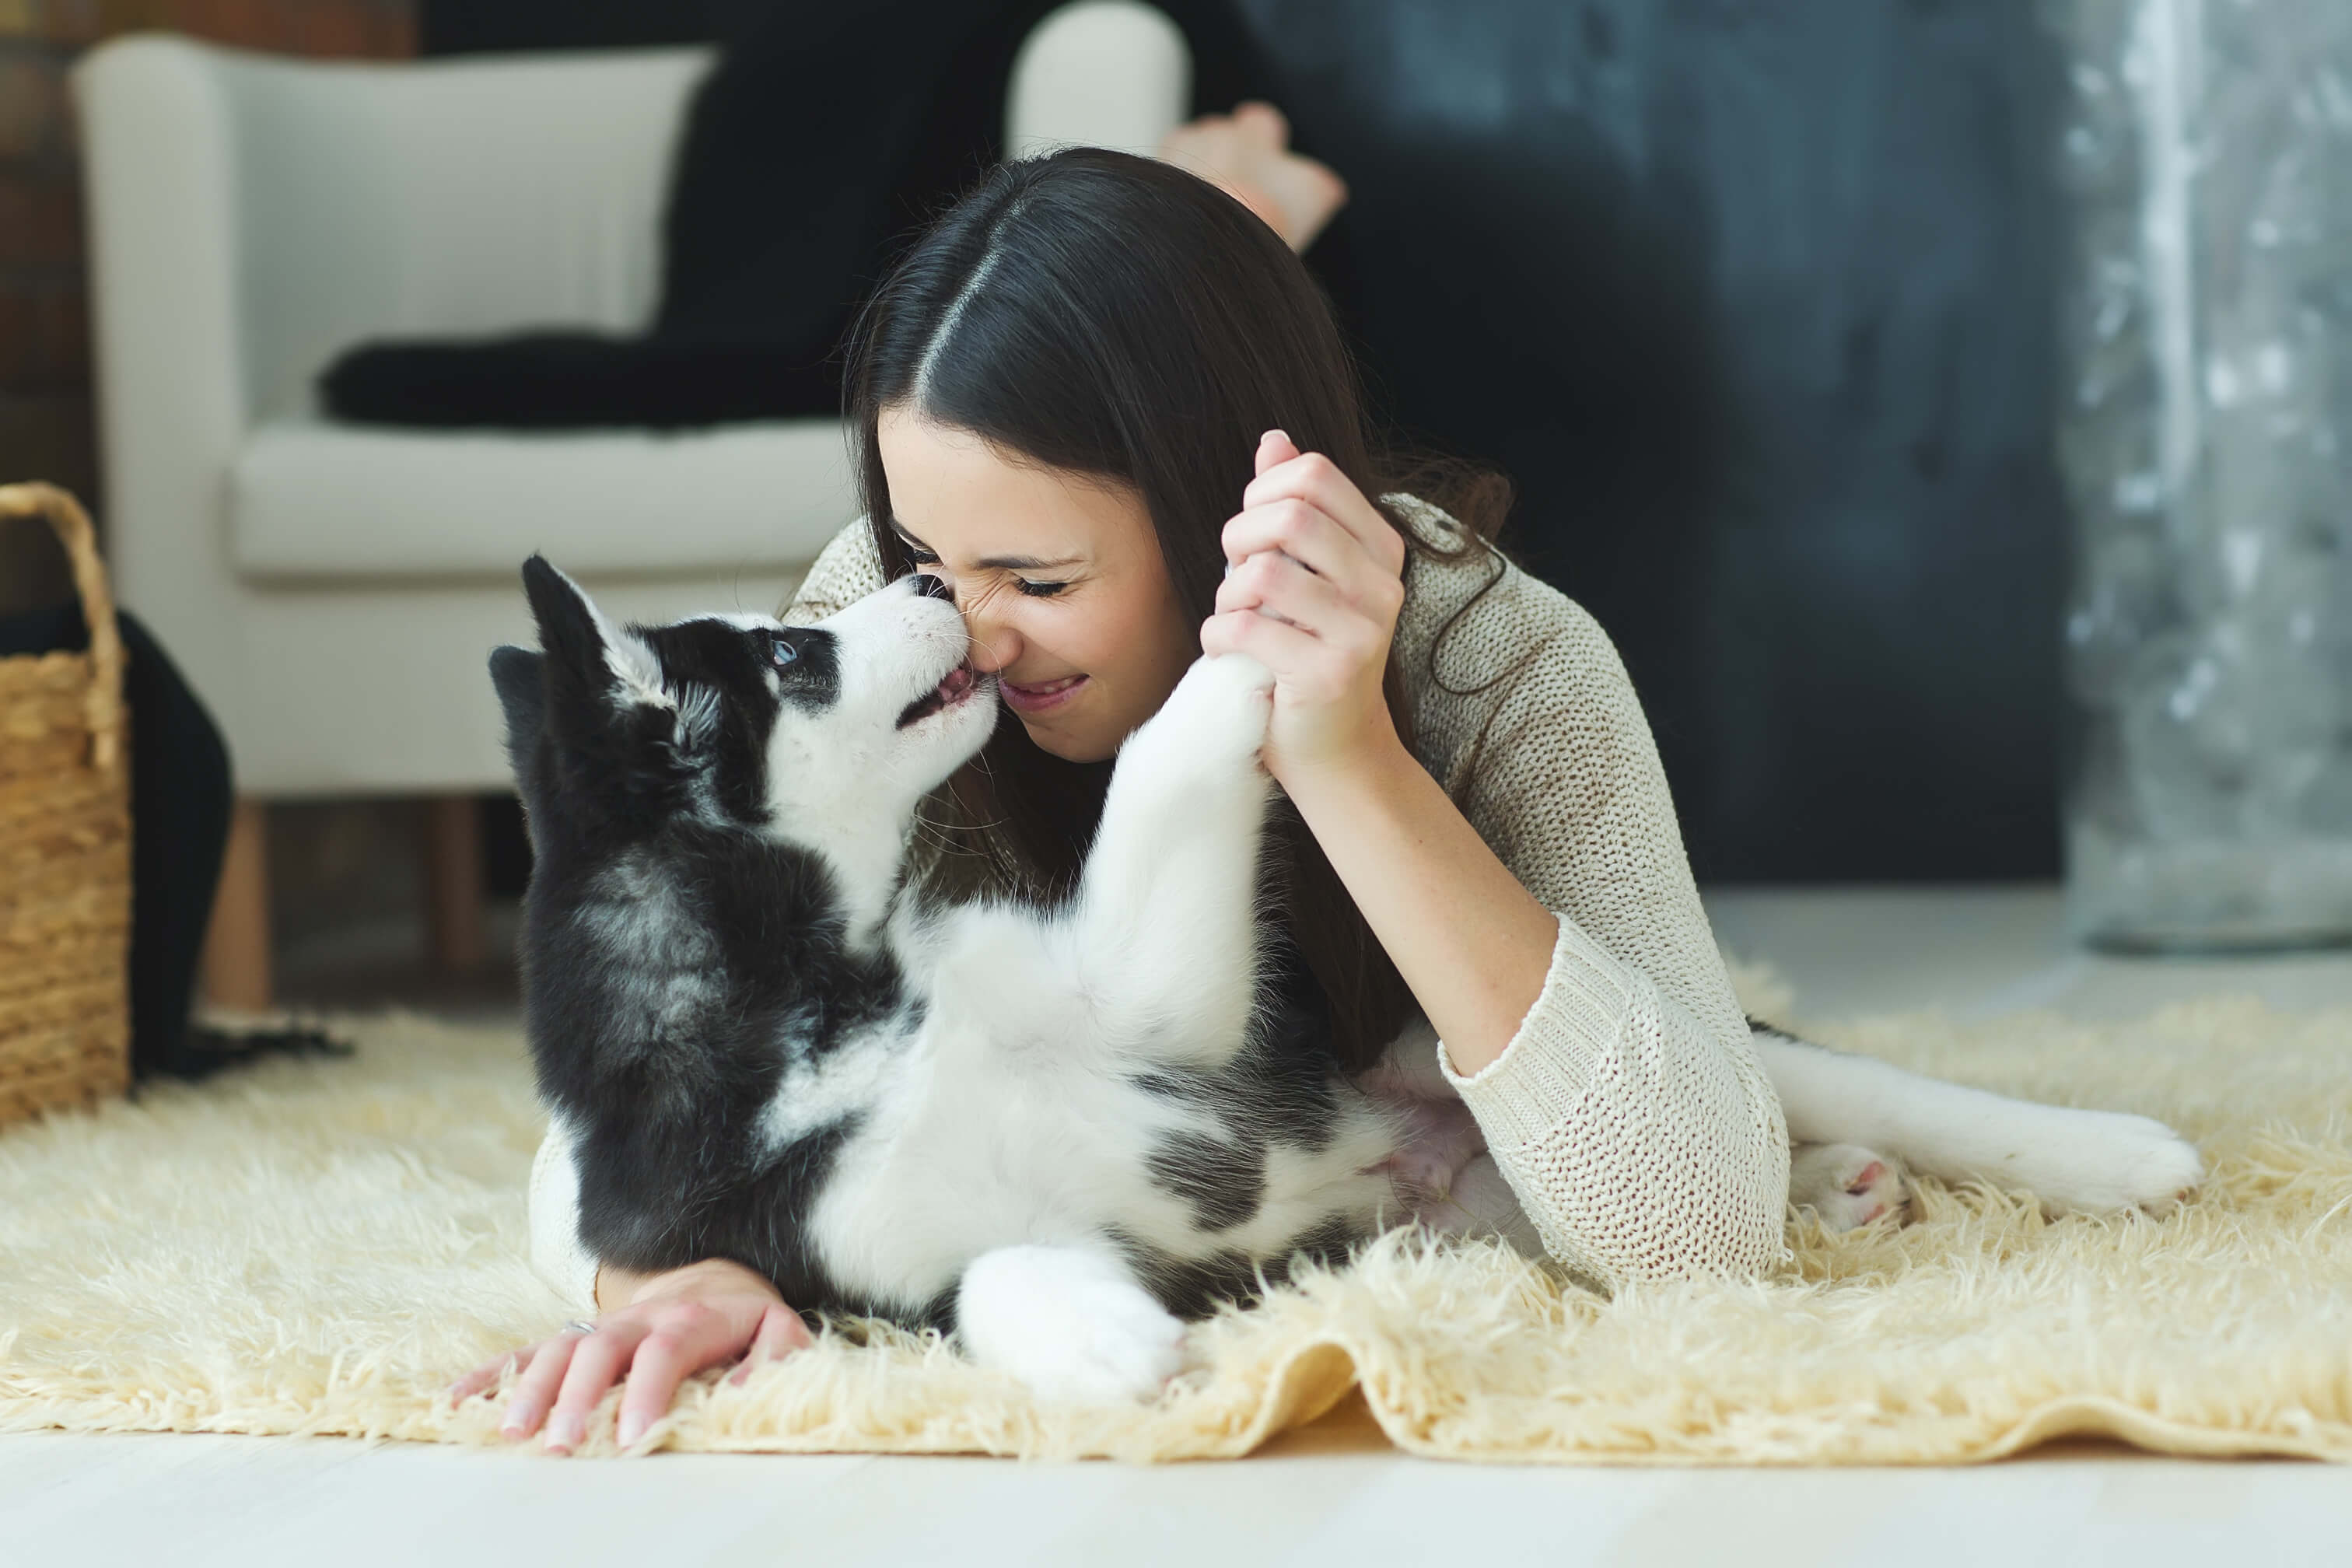 A brown-haired woman in a cream sweater laying on the floor and playing with her Siberian Husky puppy.